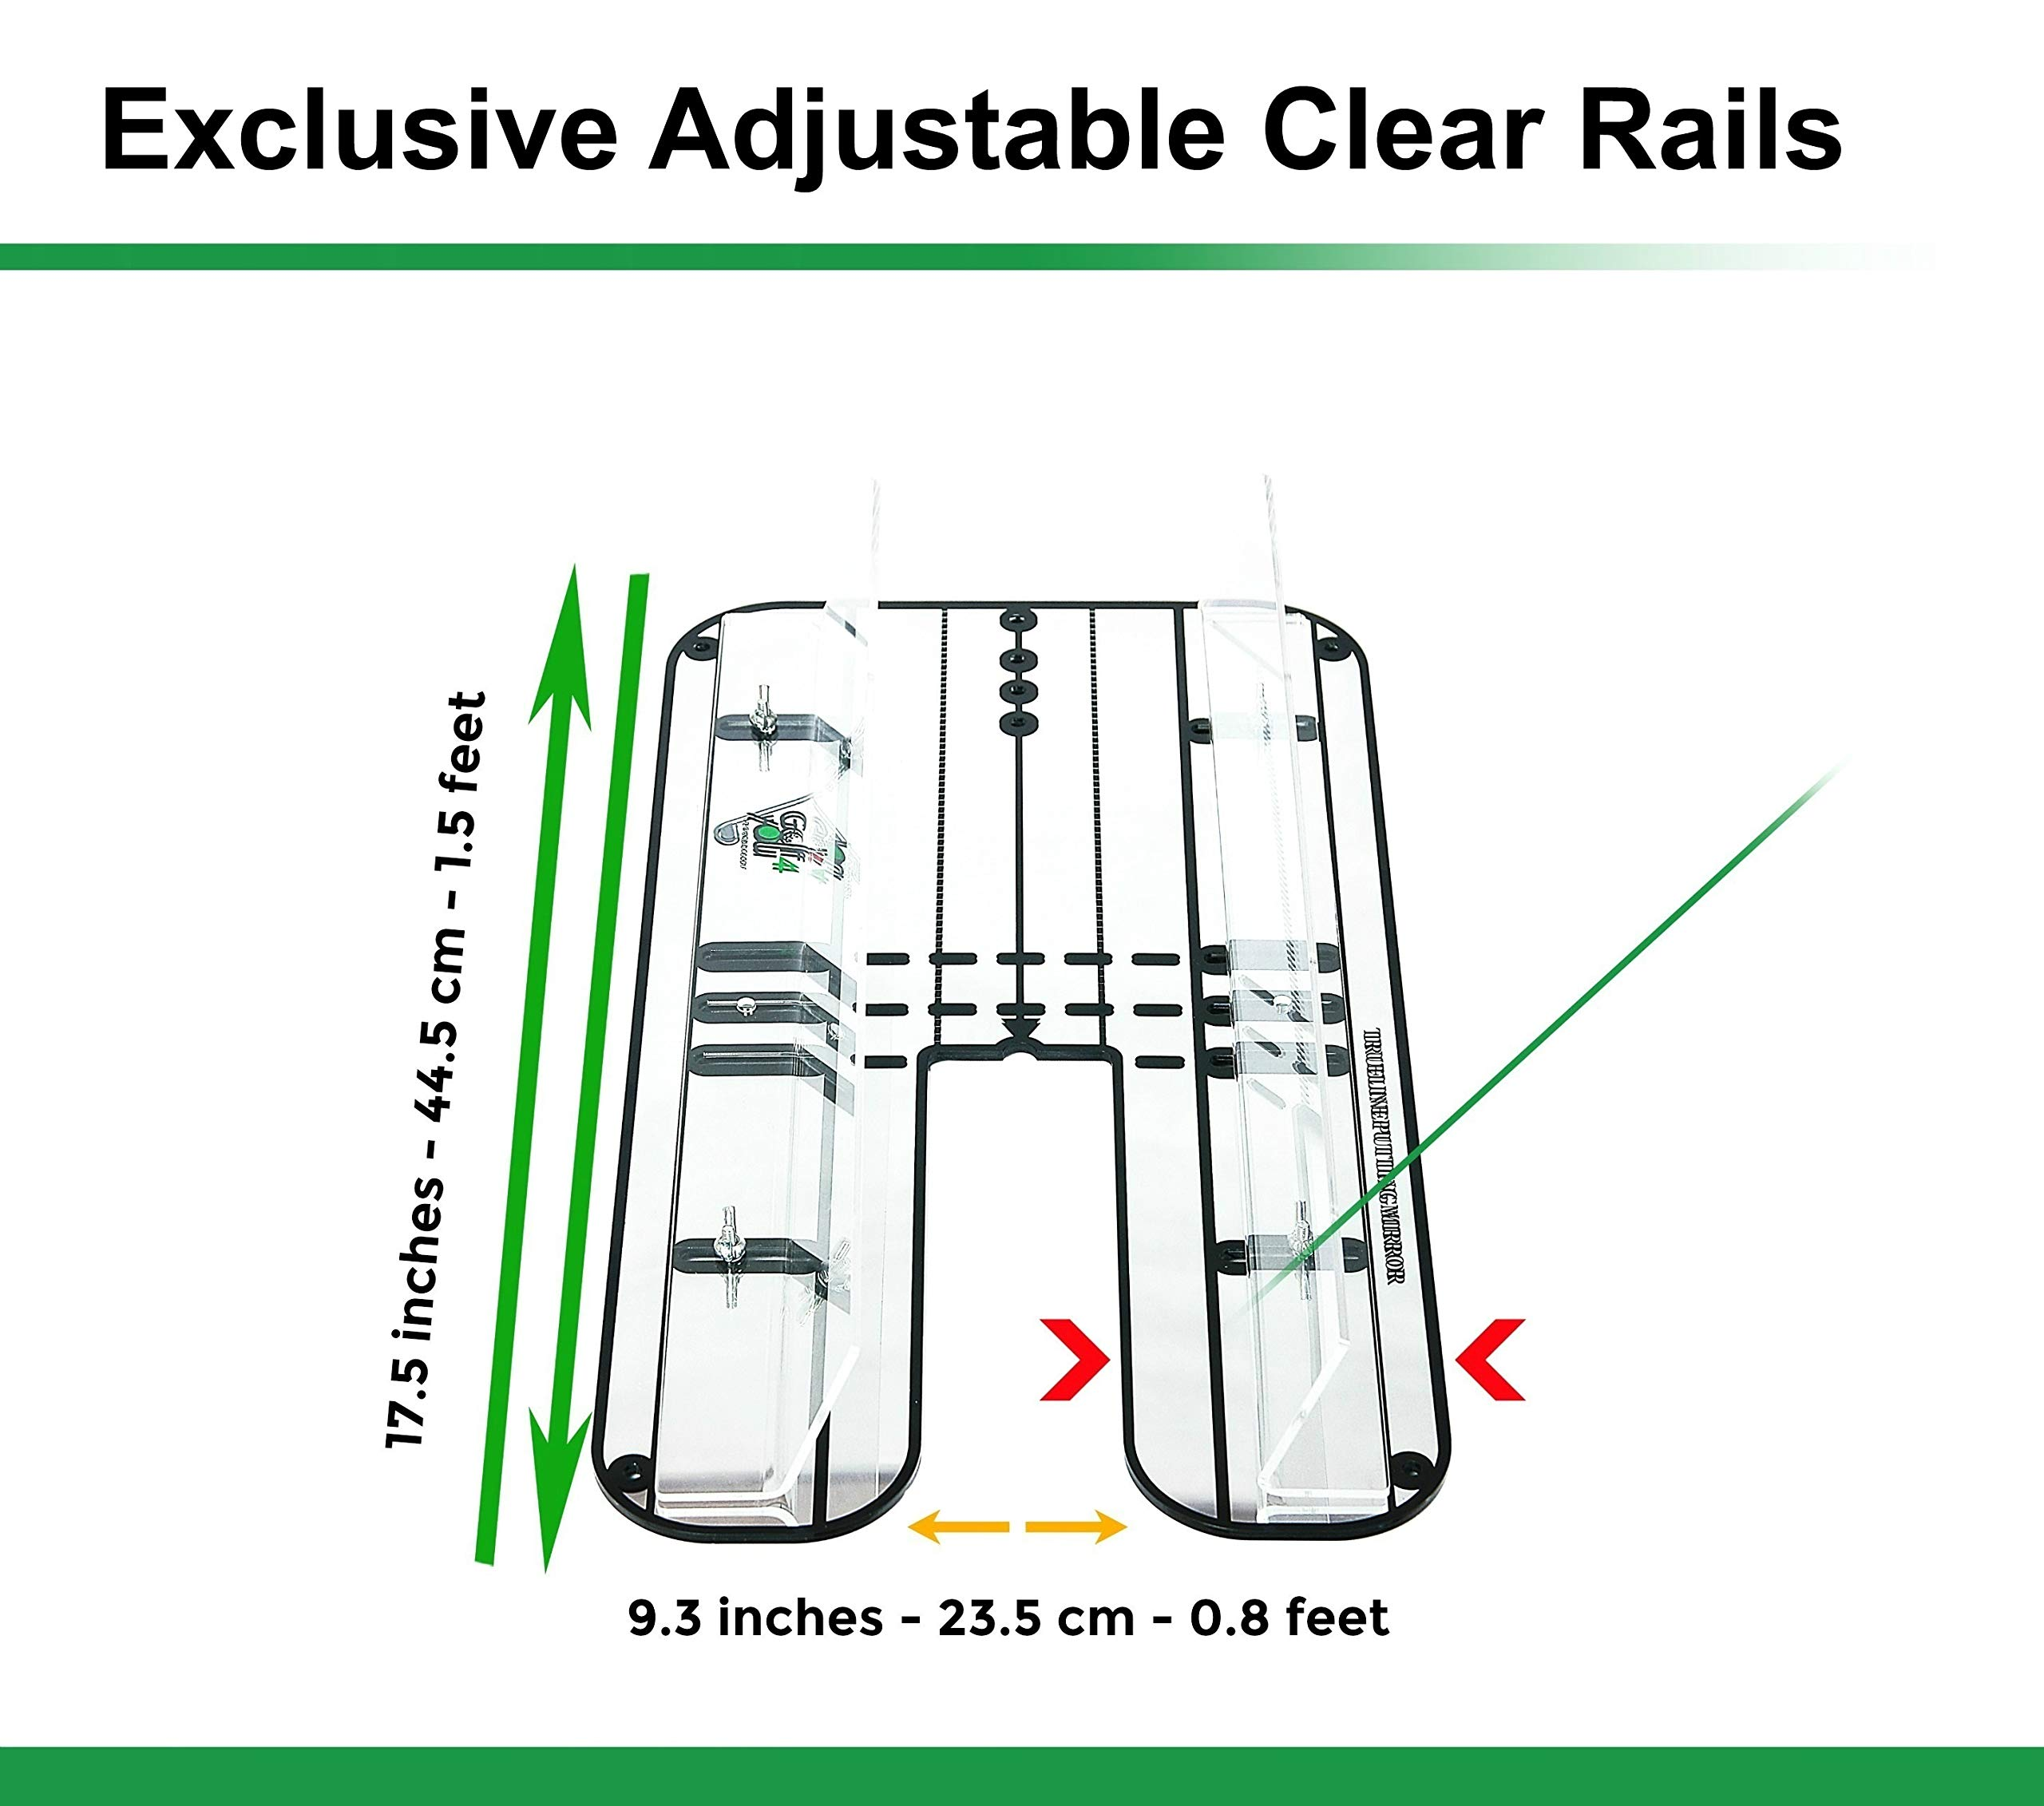 Golf Training Aid, Putting Set - XL Alignment Mirror Design with Our Exclusive Clear Adjustable Guide Rails ''True Line Putting Mirror'' - Leading Practice Aid for On-Line, Consistent Putting Stroke by GOLF4 YOU THE WORLD OF GOLF (Image #5)